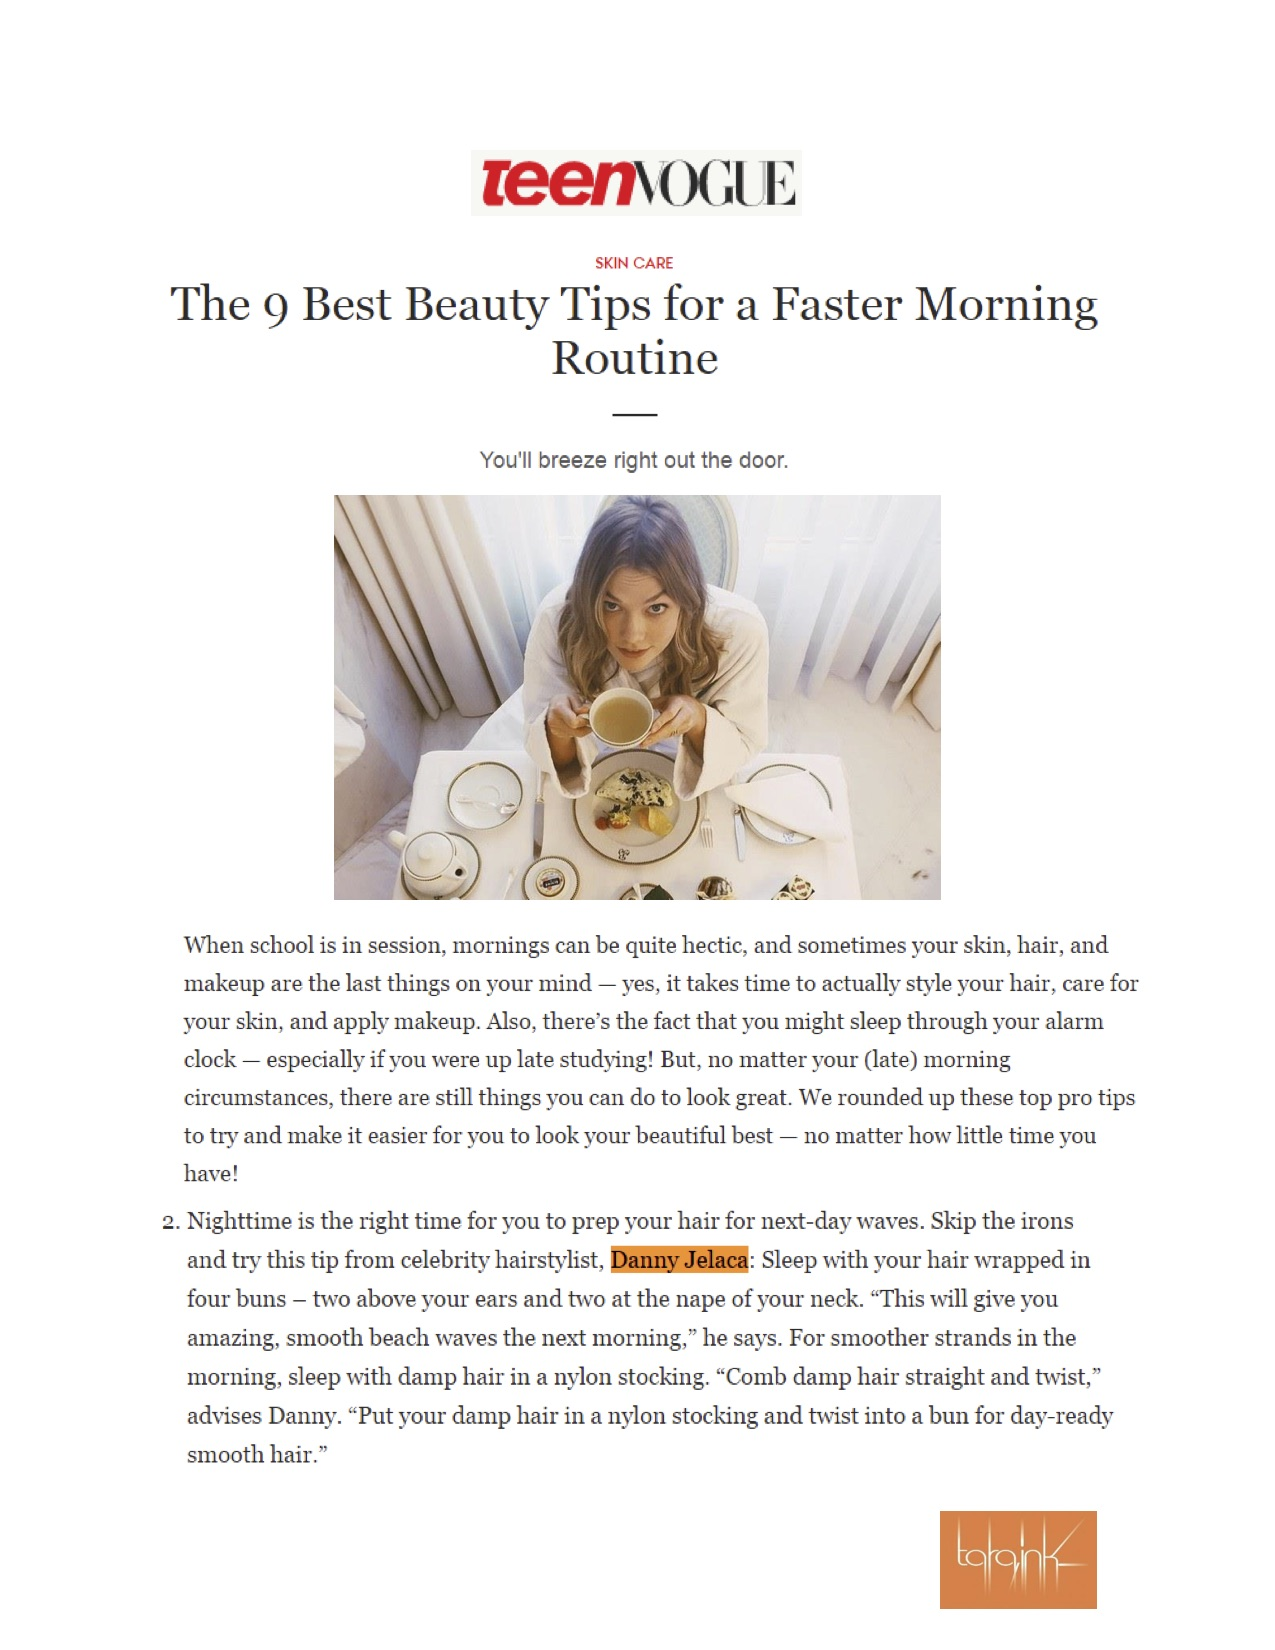 Teen Vogue features Danny Jelaca for Morning Beauty Tips